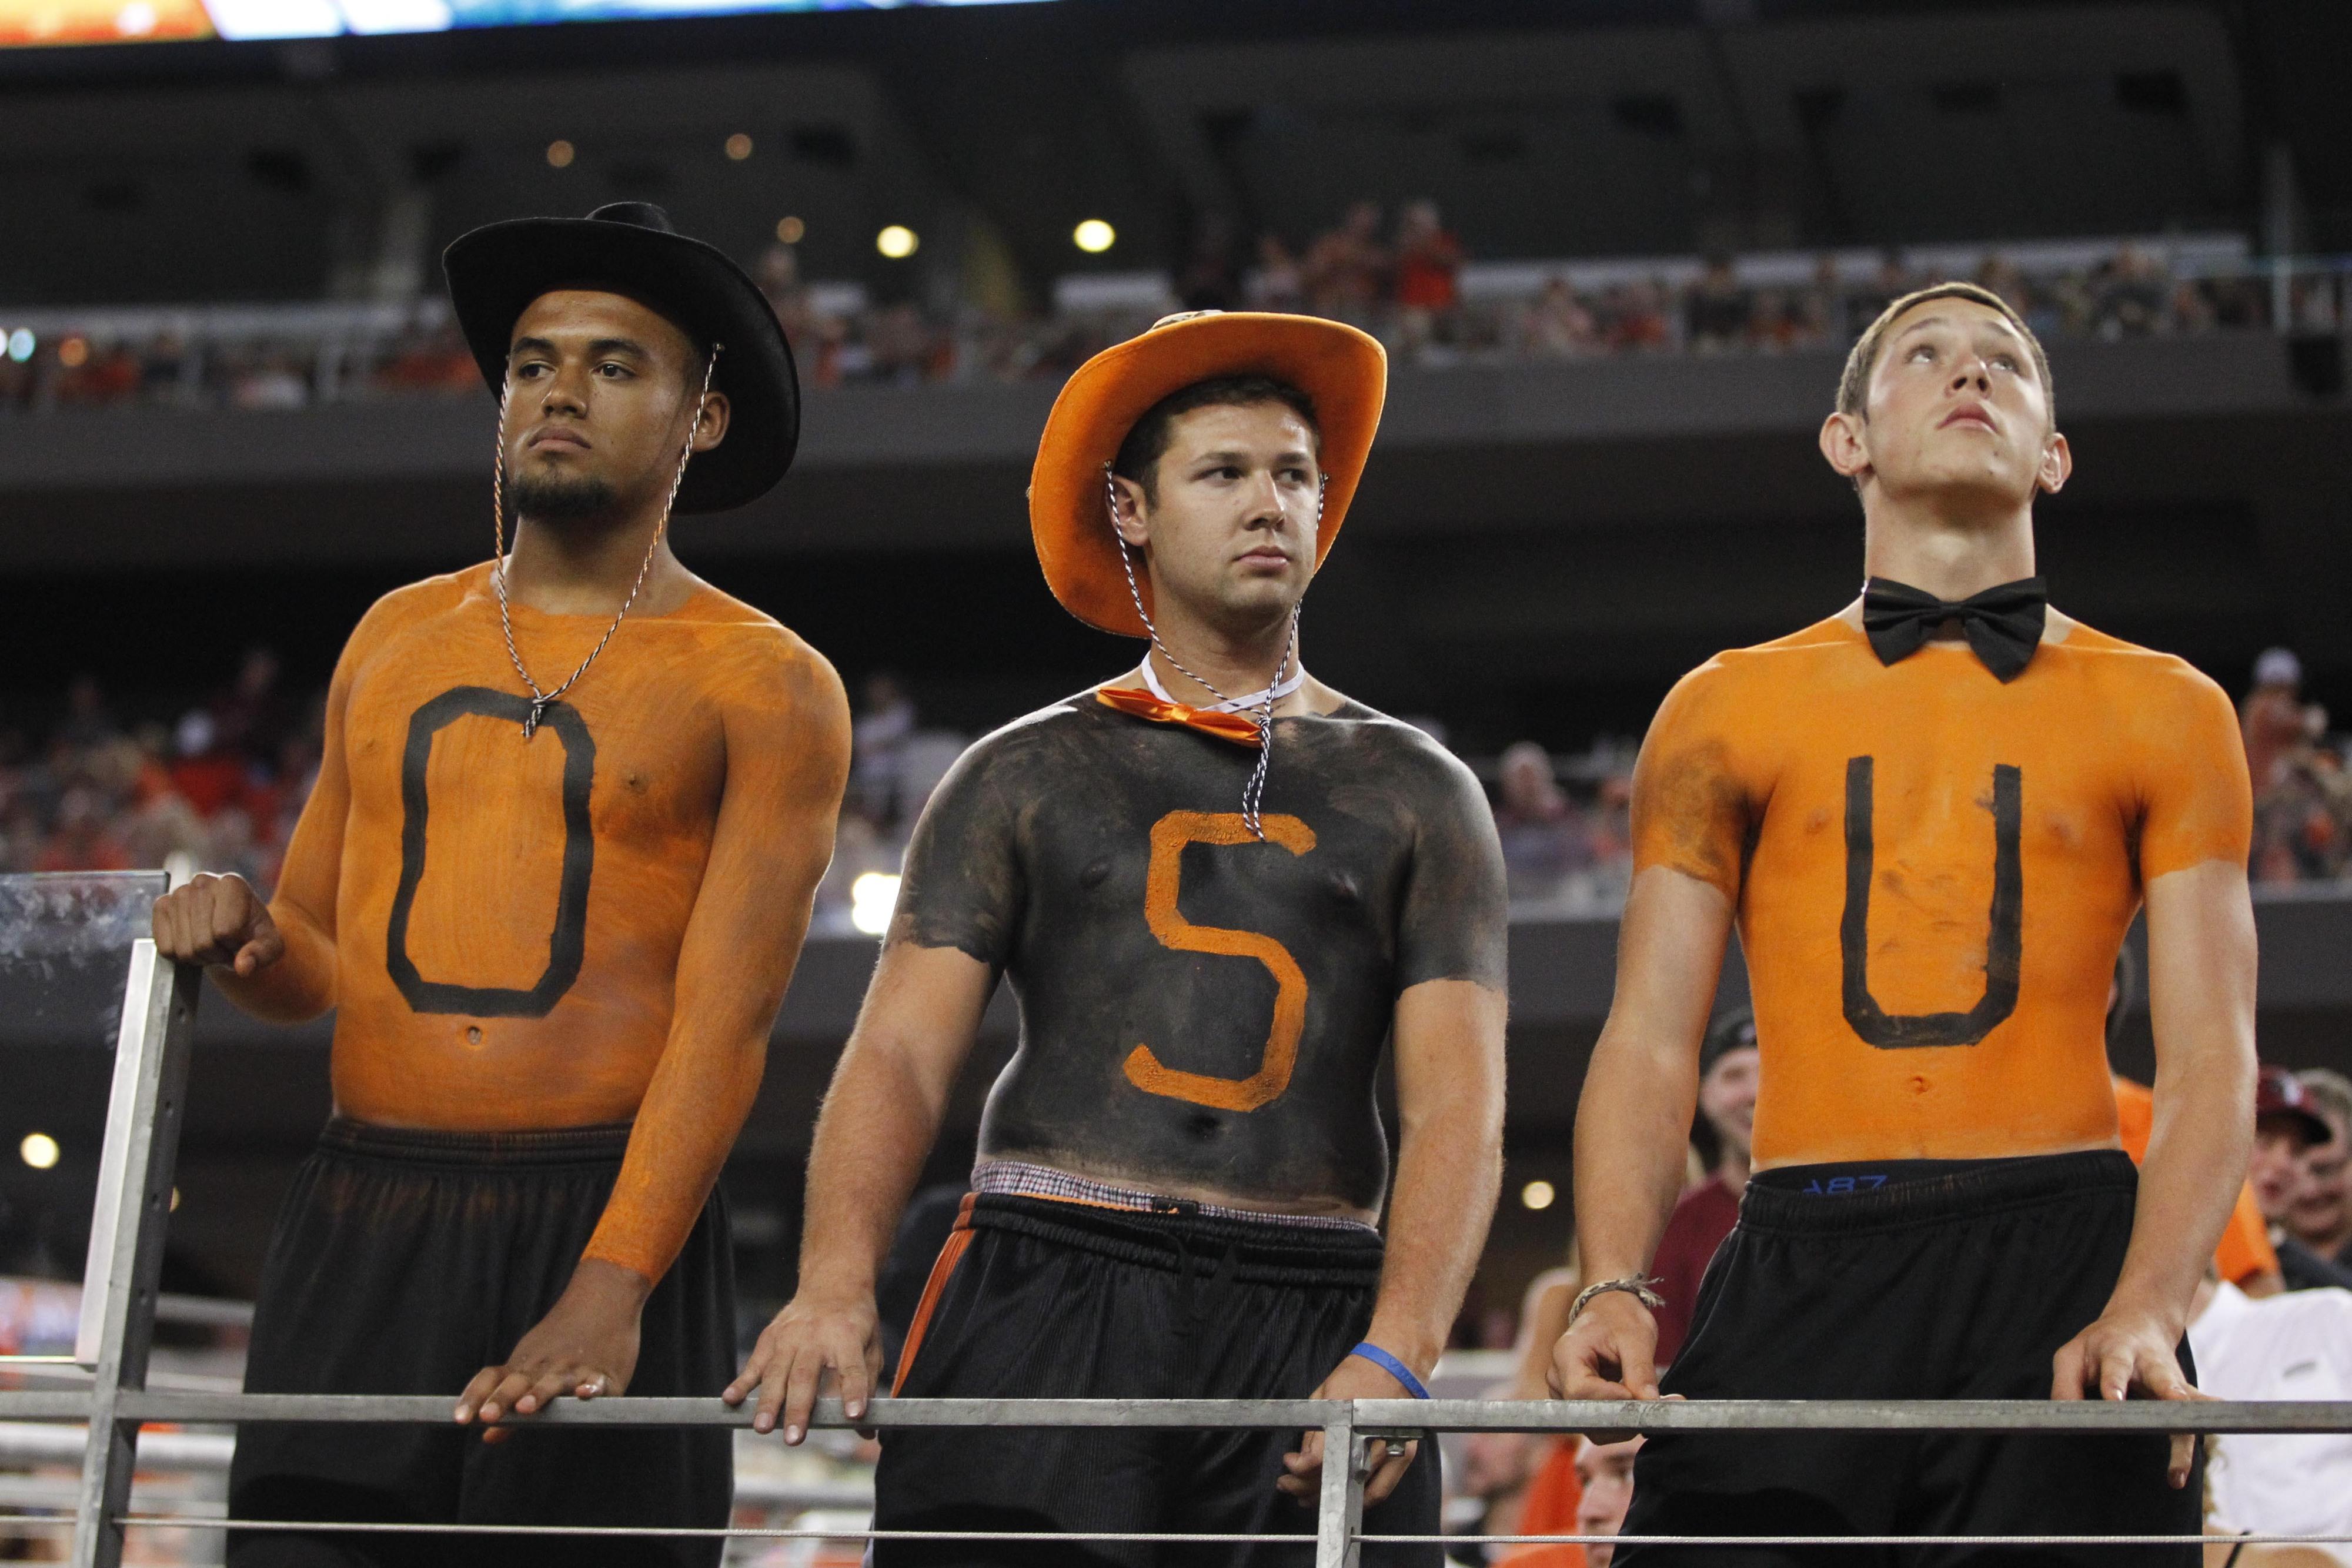 Don't overlook the OSU vs. TTU game this Thursday! *Real* fans needed!